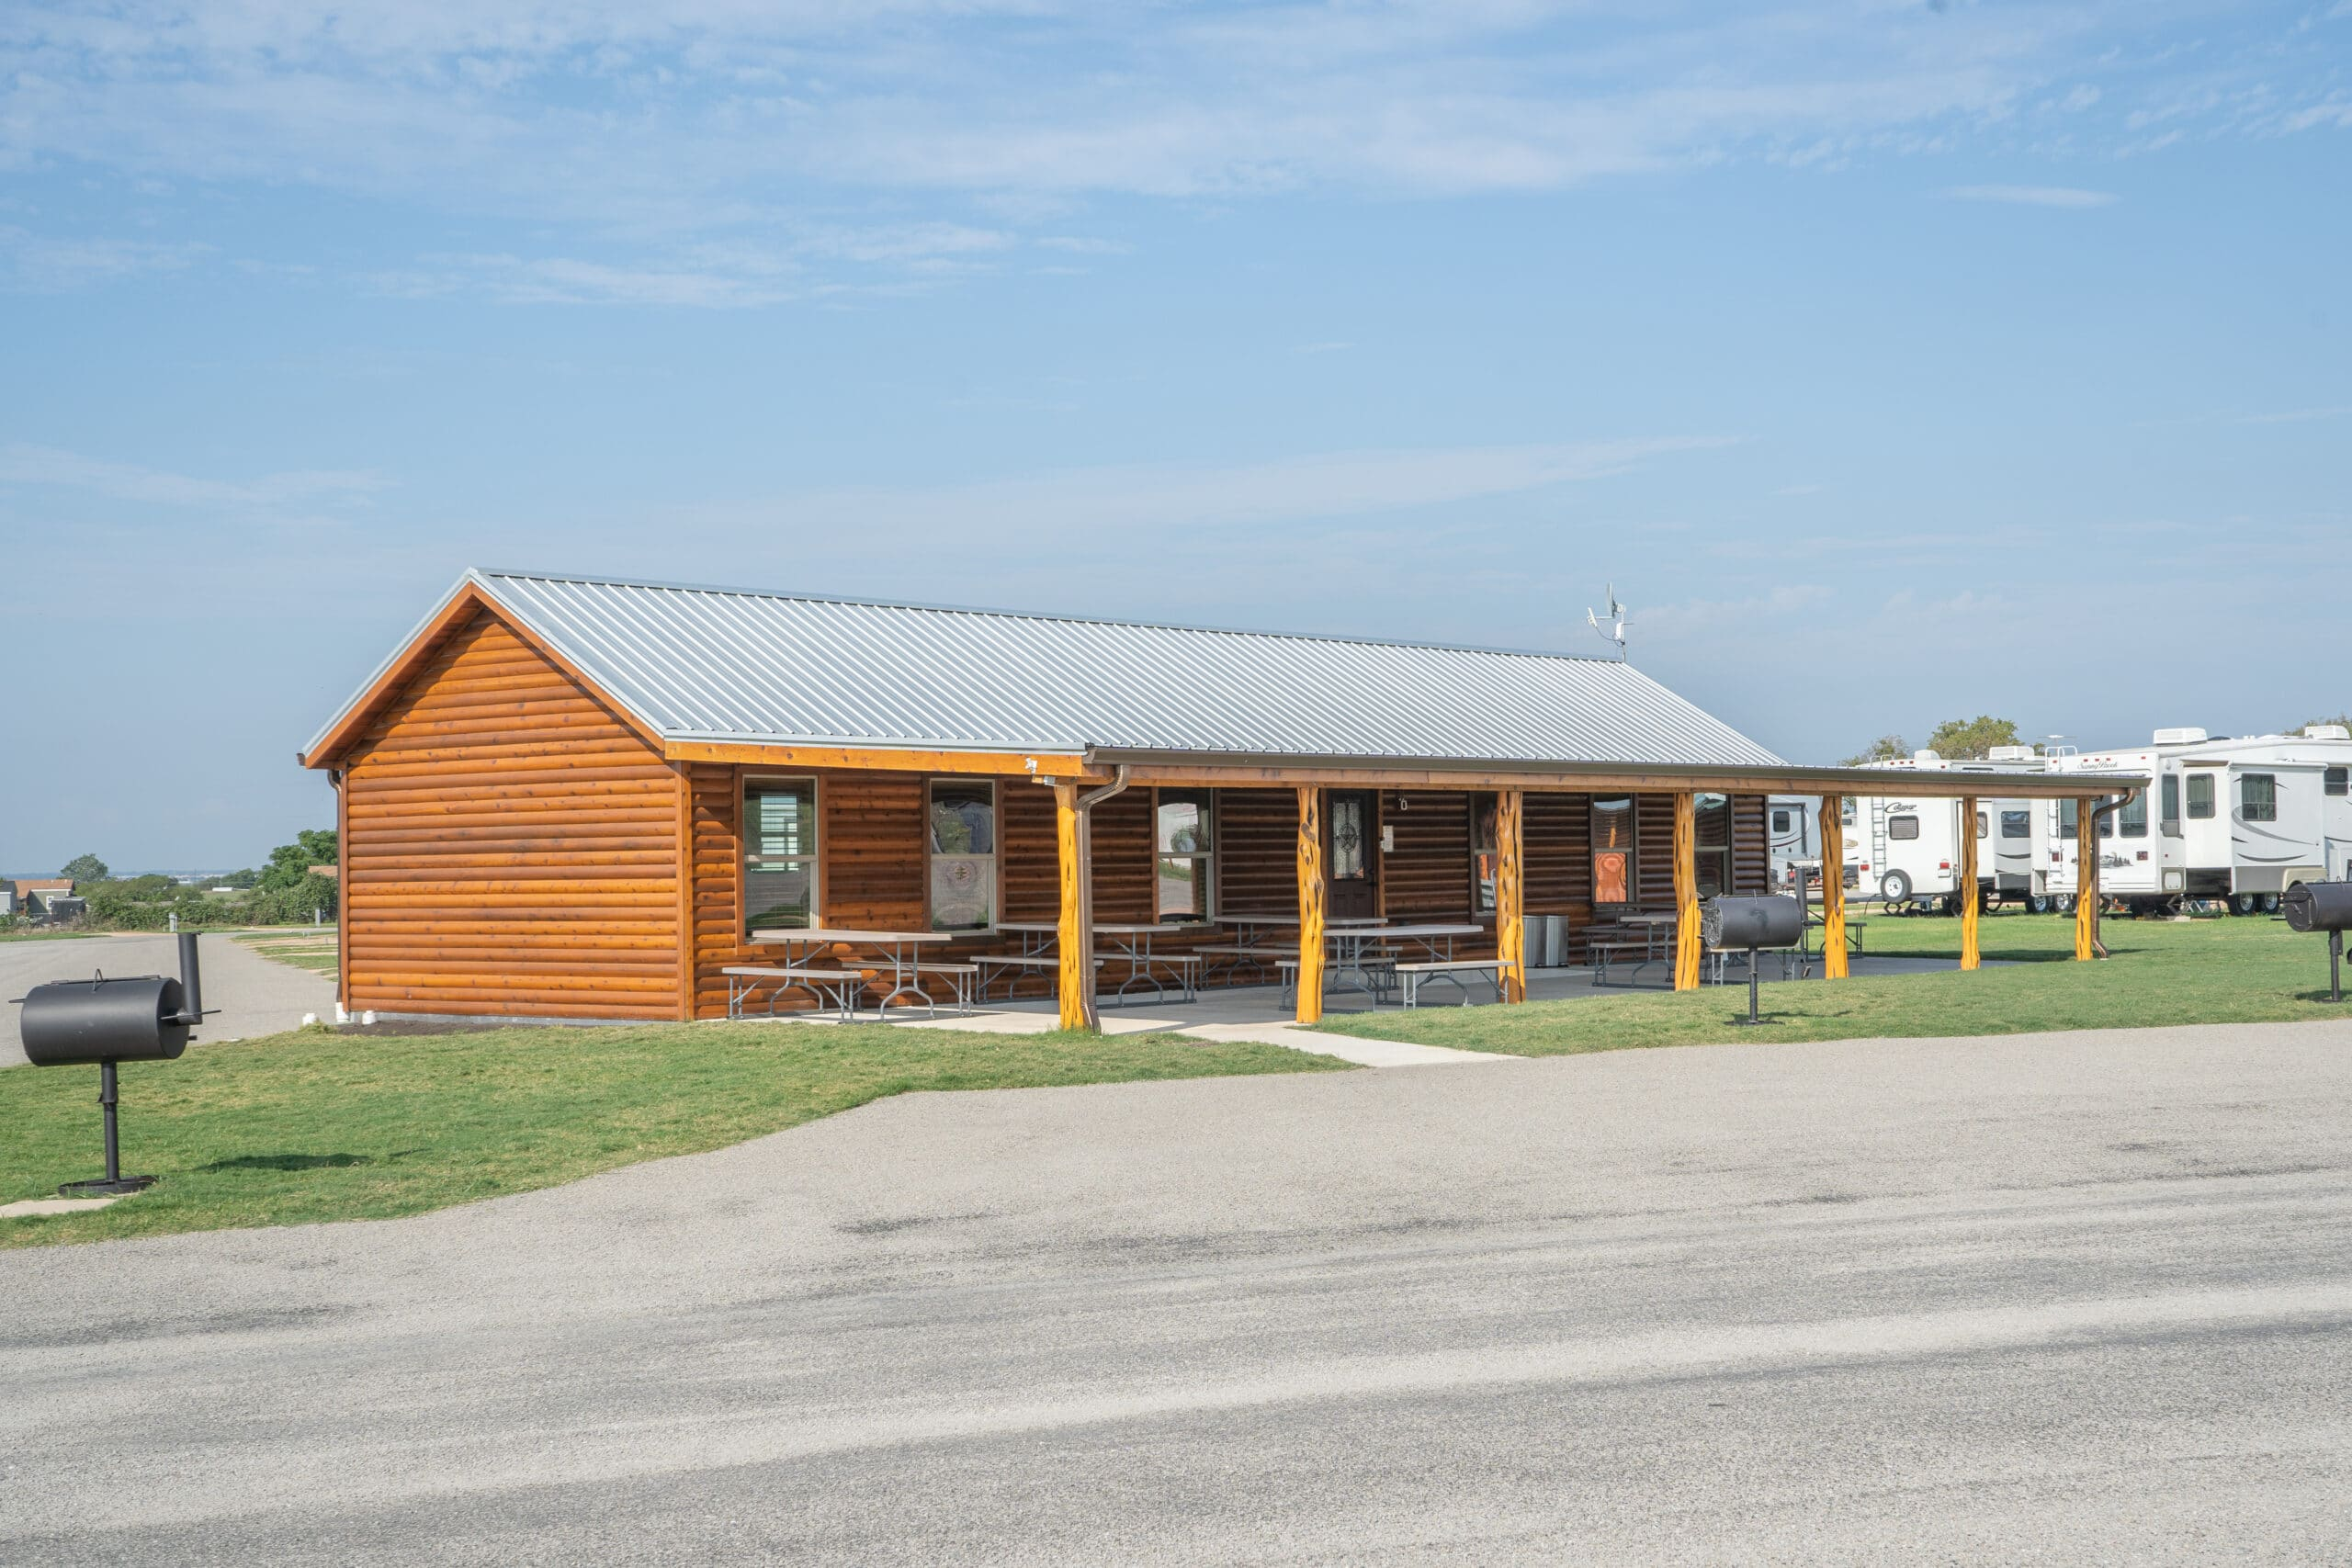 Campers Love This RV Park Cabin